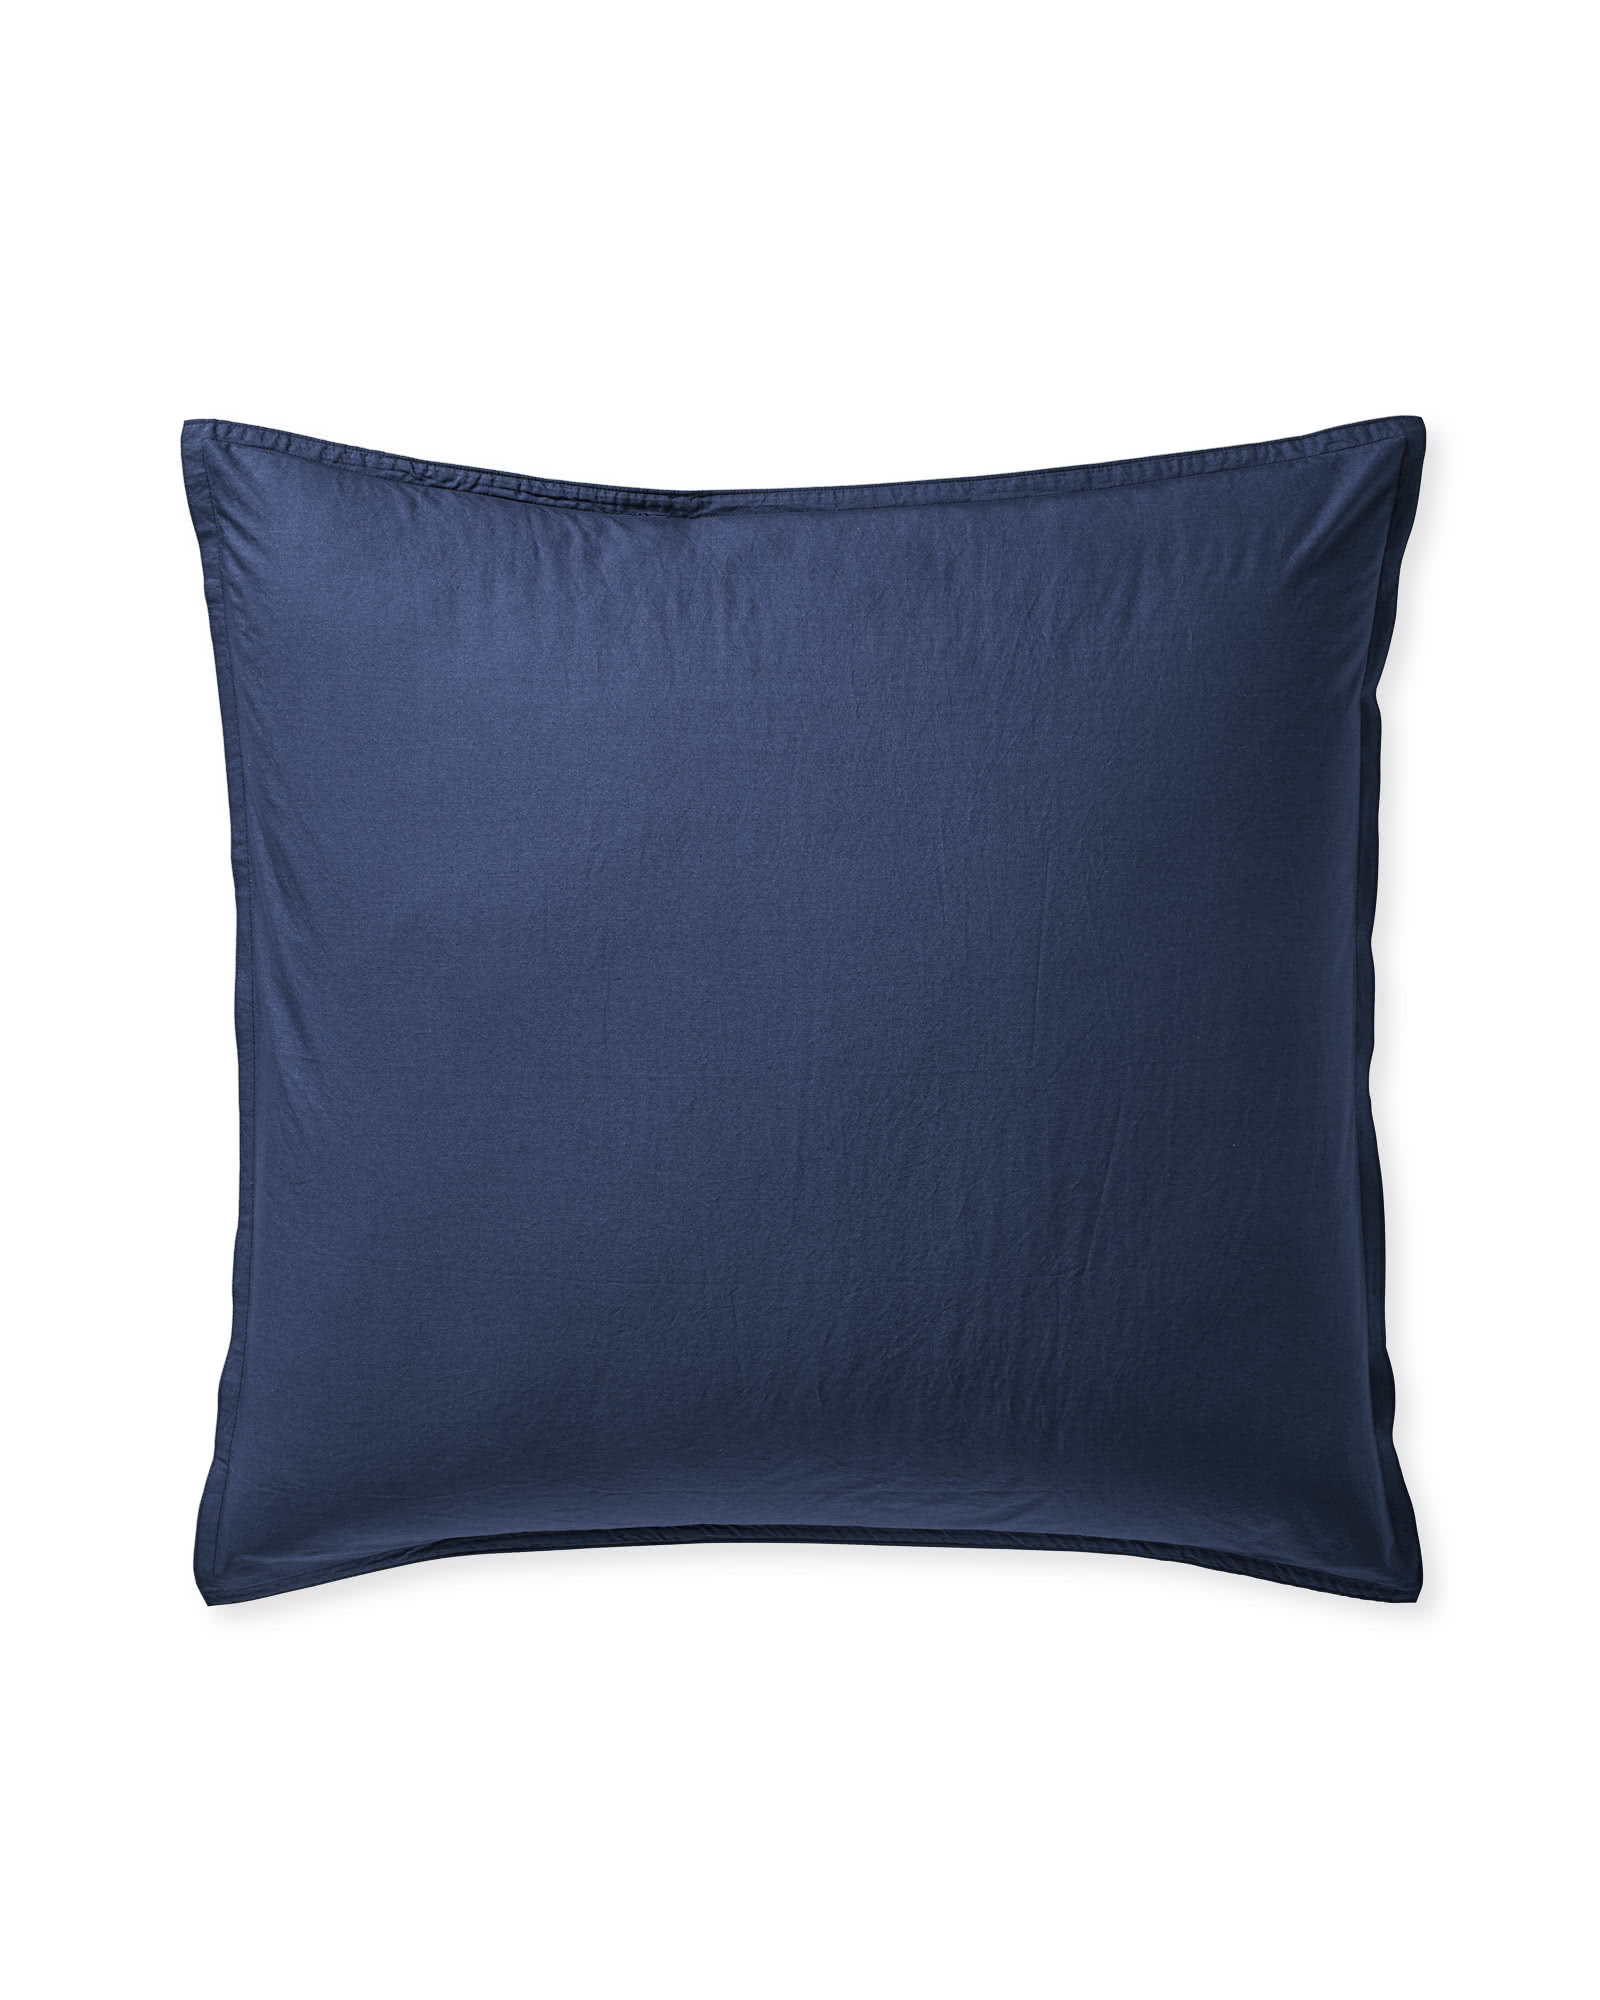 Portofino Percale Shams, Navy